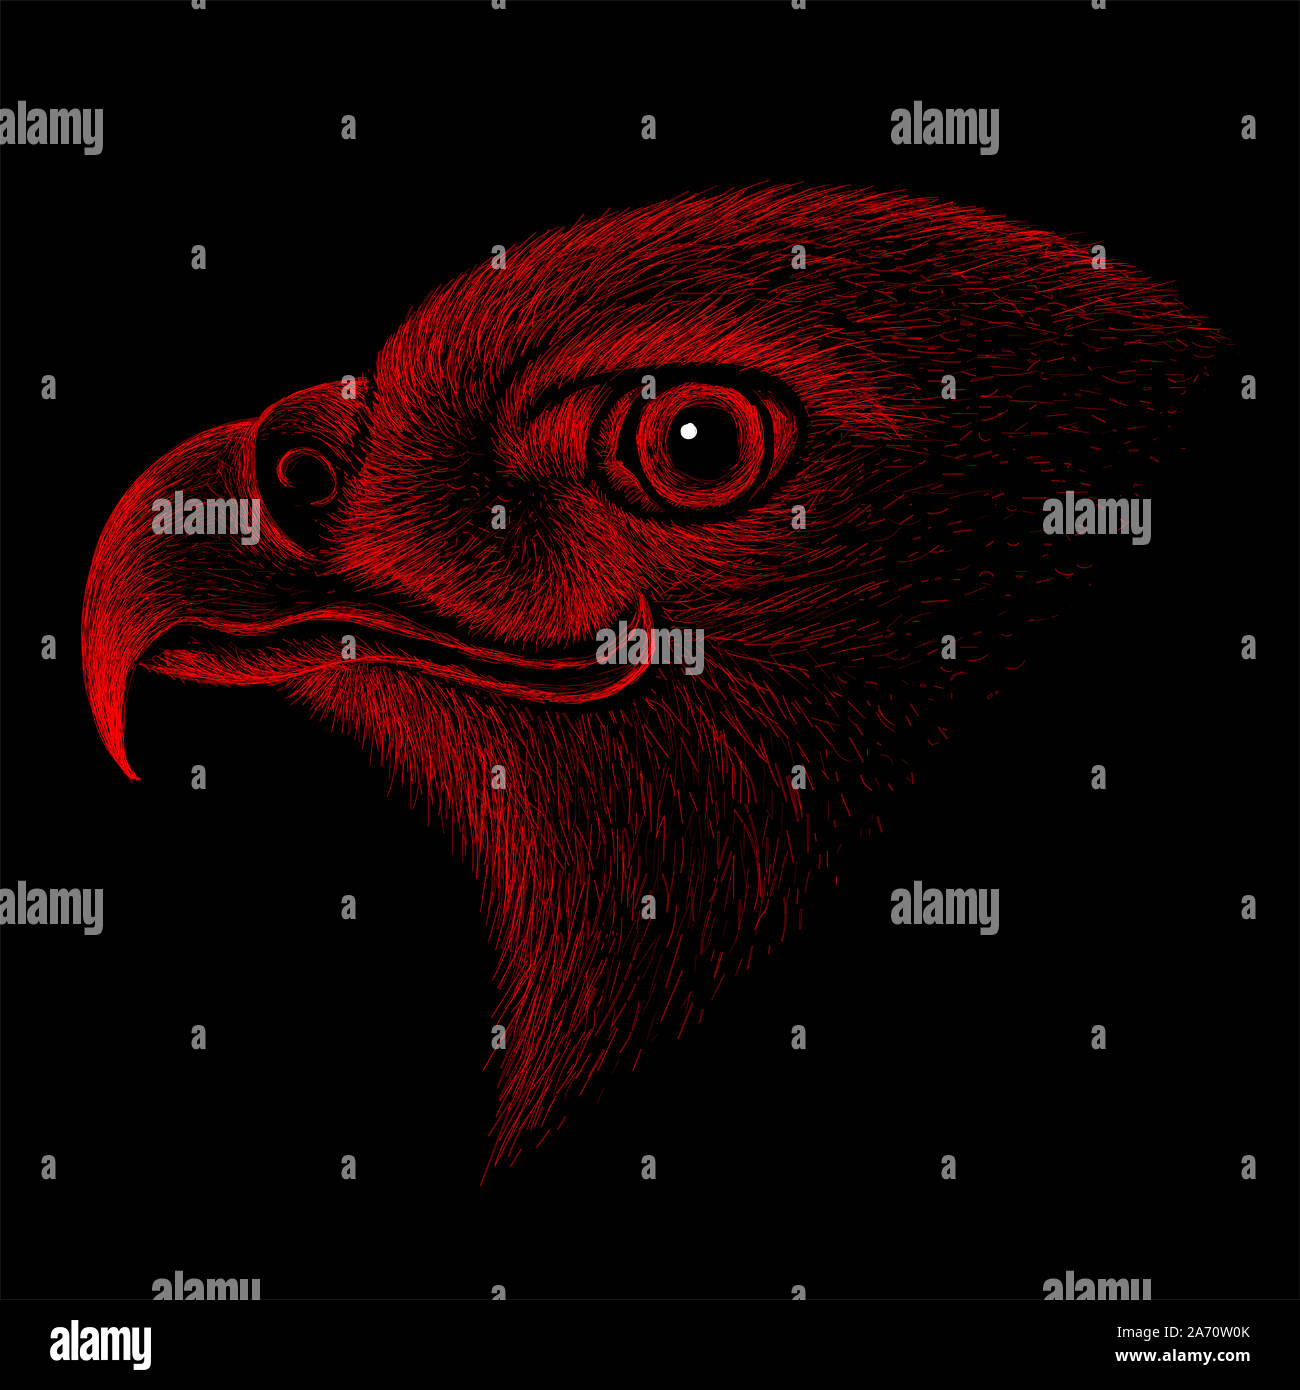 Eagle Head Vector High Resolution Stock Photography And Images Alamy